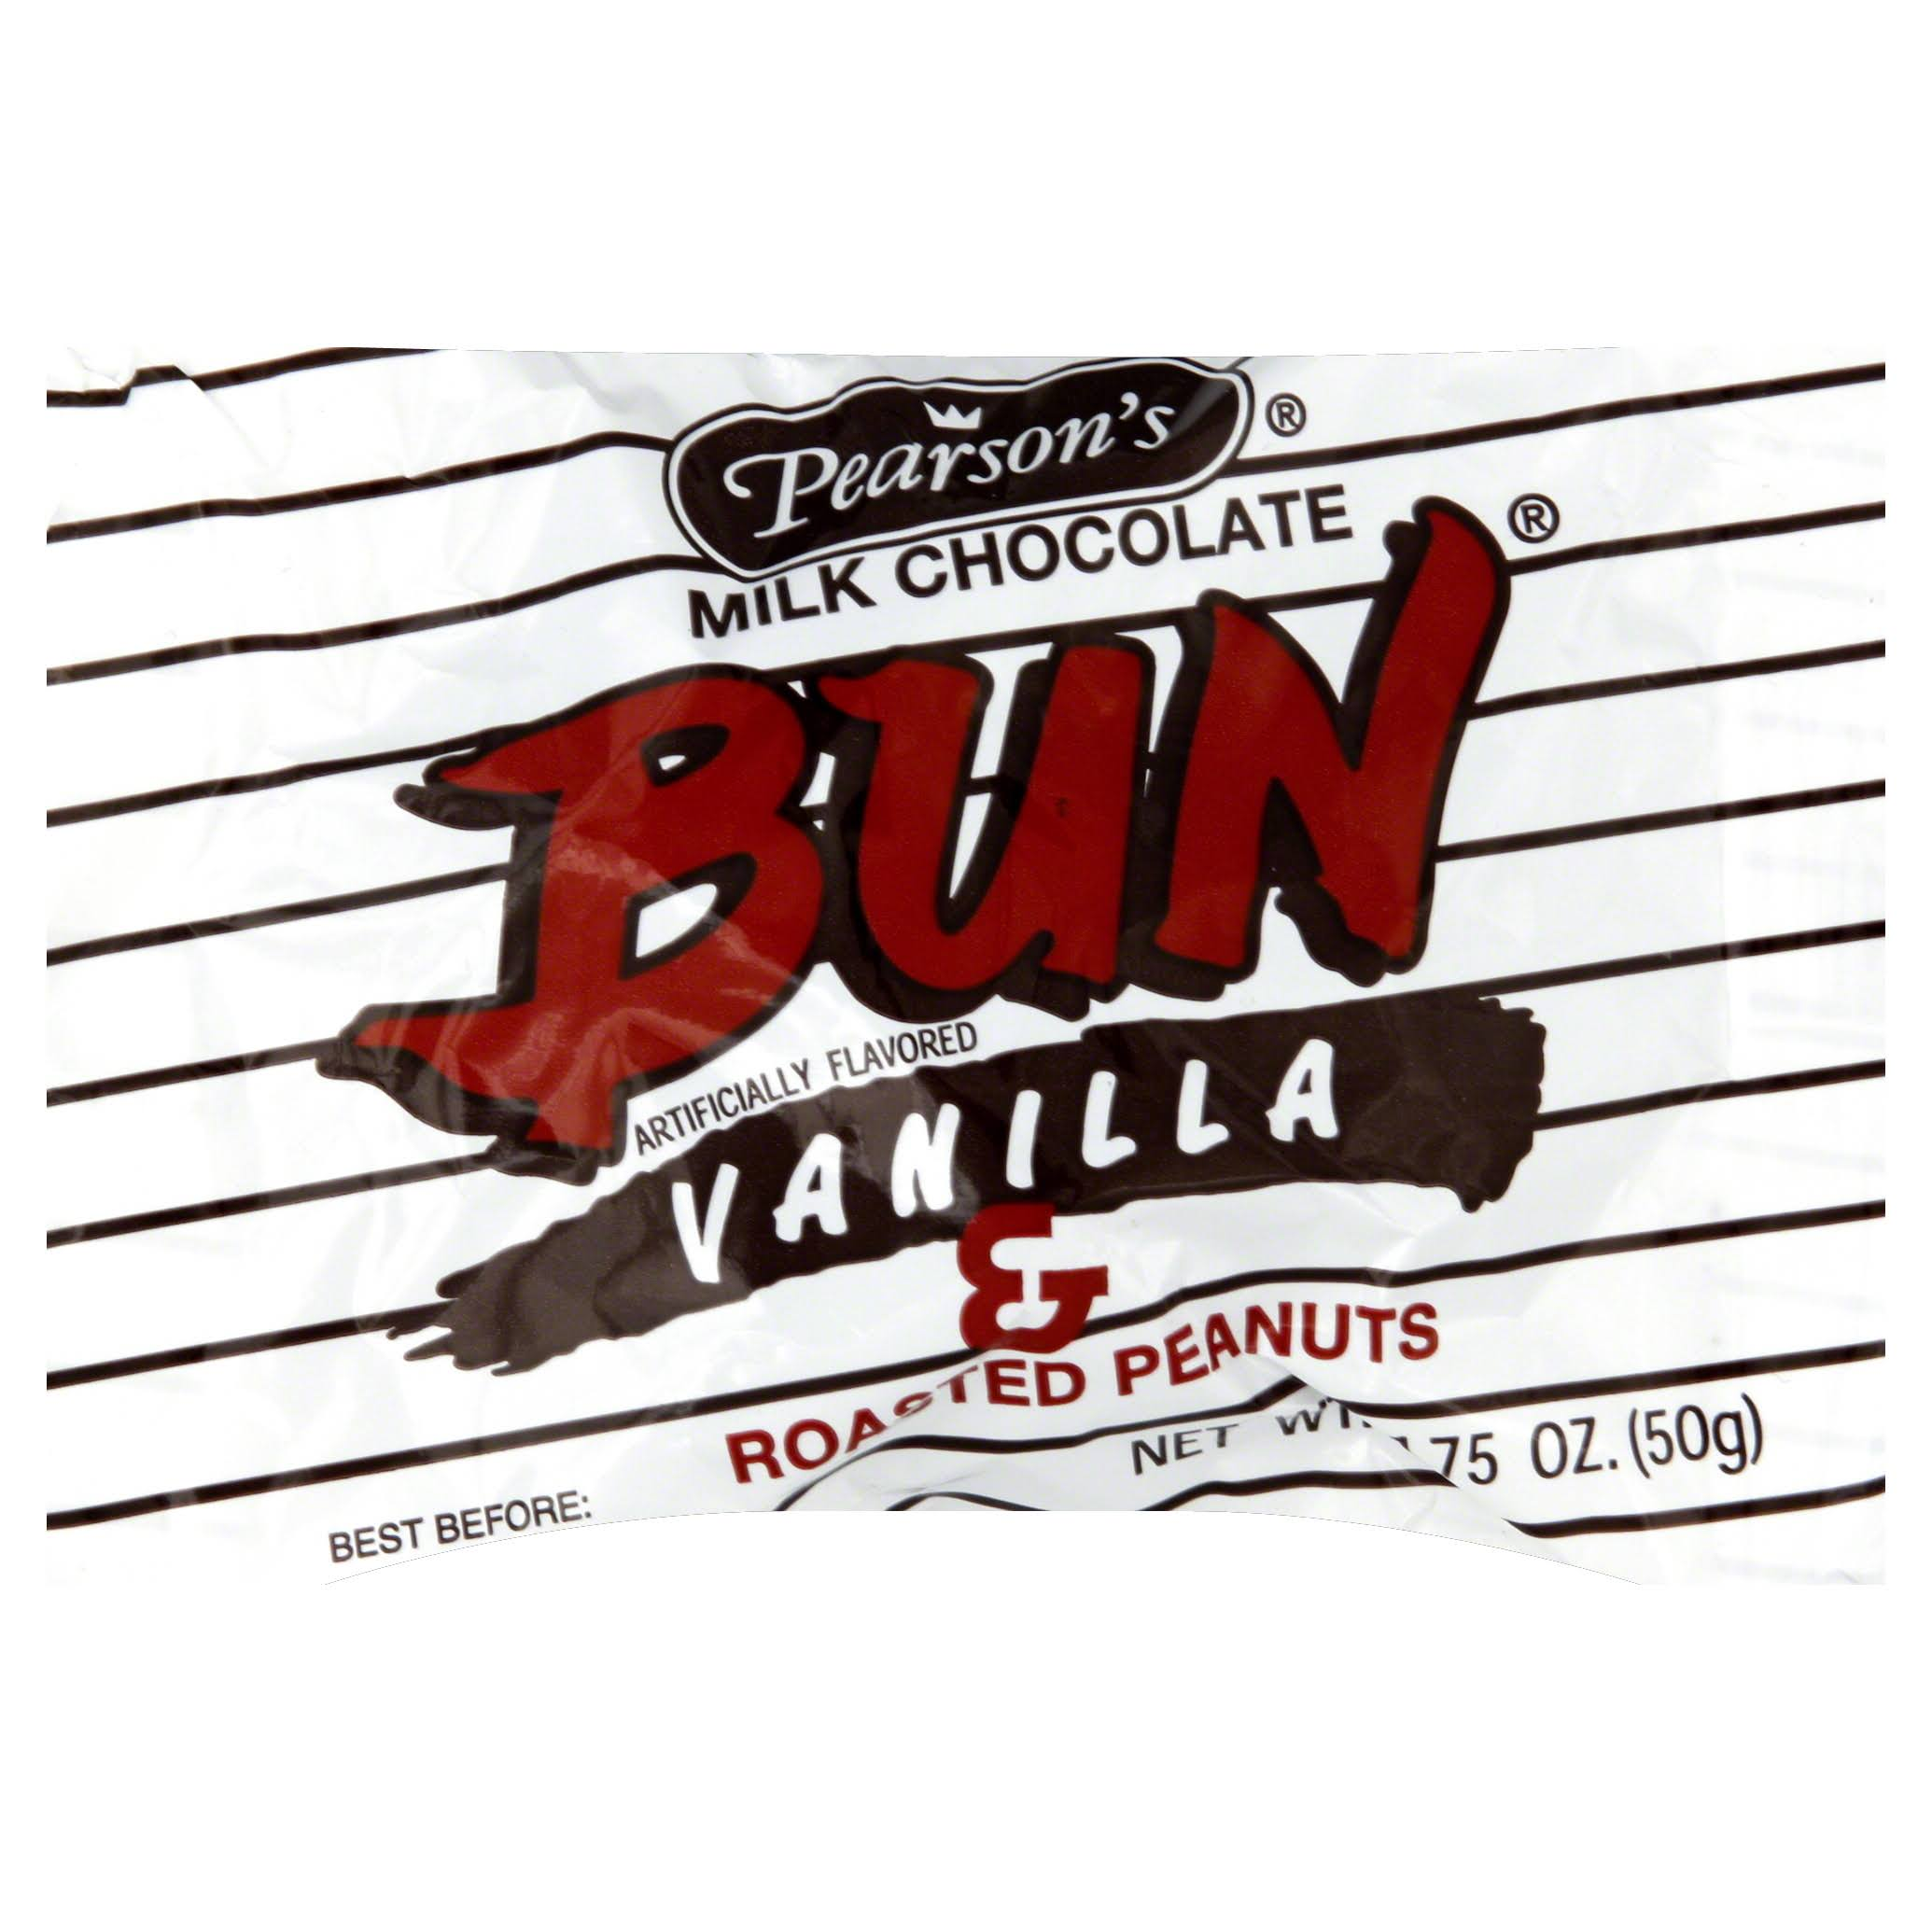 Pearson's Milk Chocolate Bun - Vanilla & Roasted Peanuts, 1.75oz